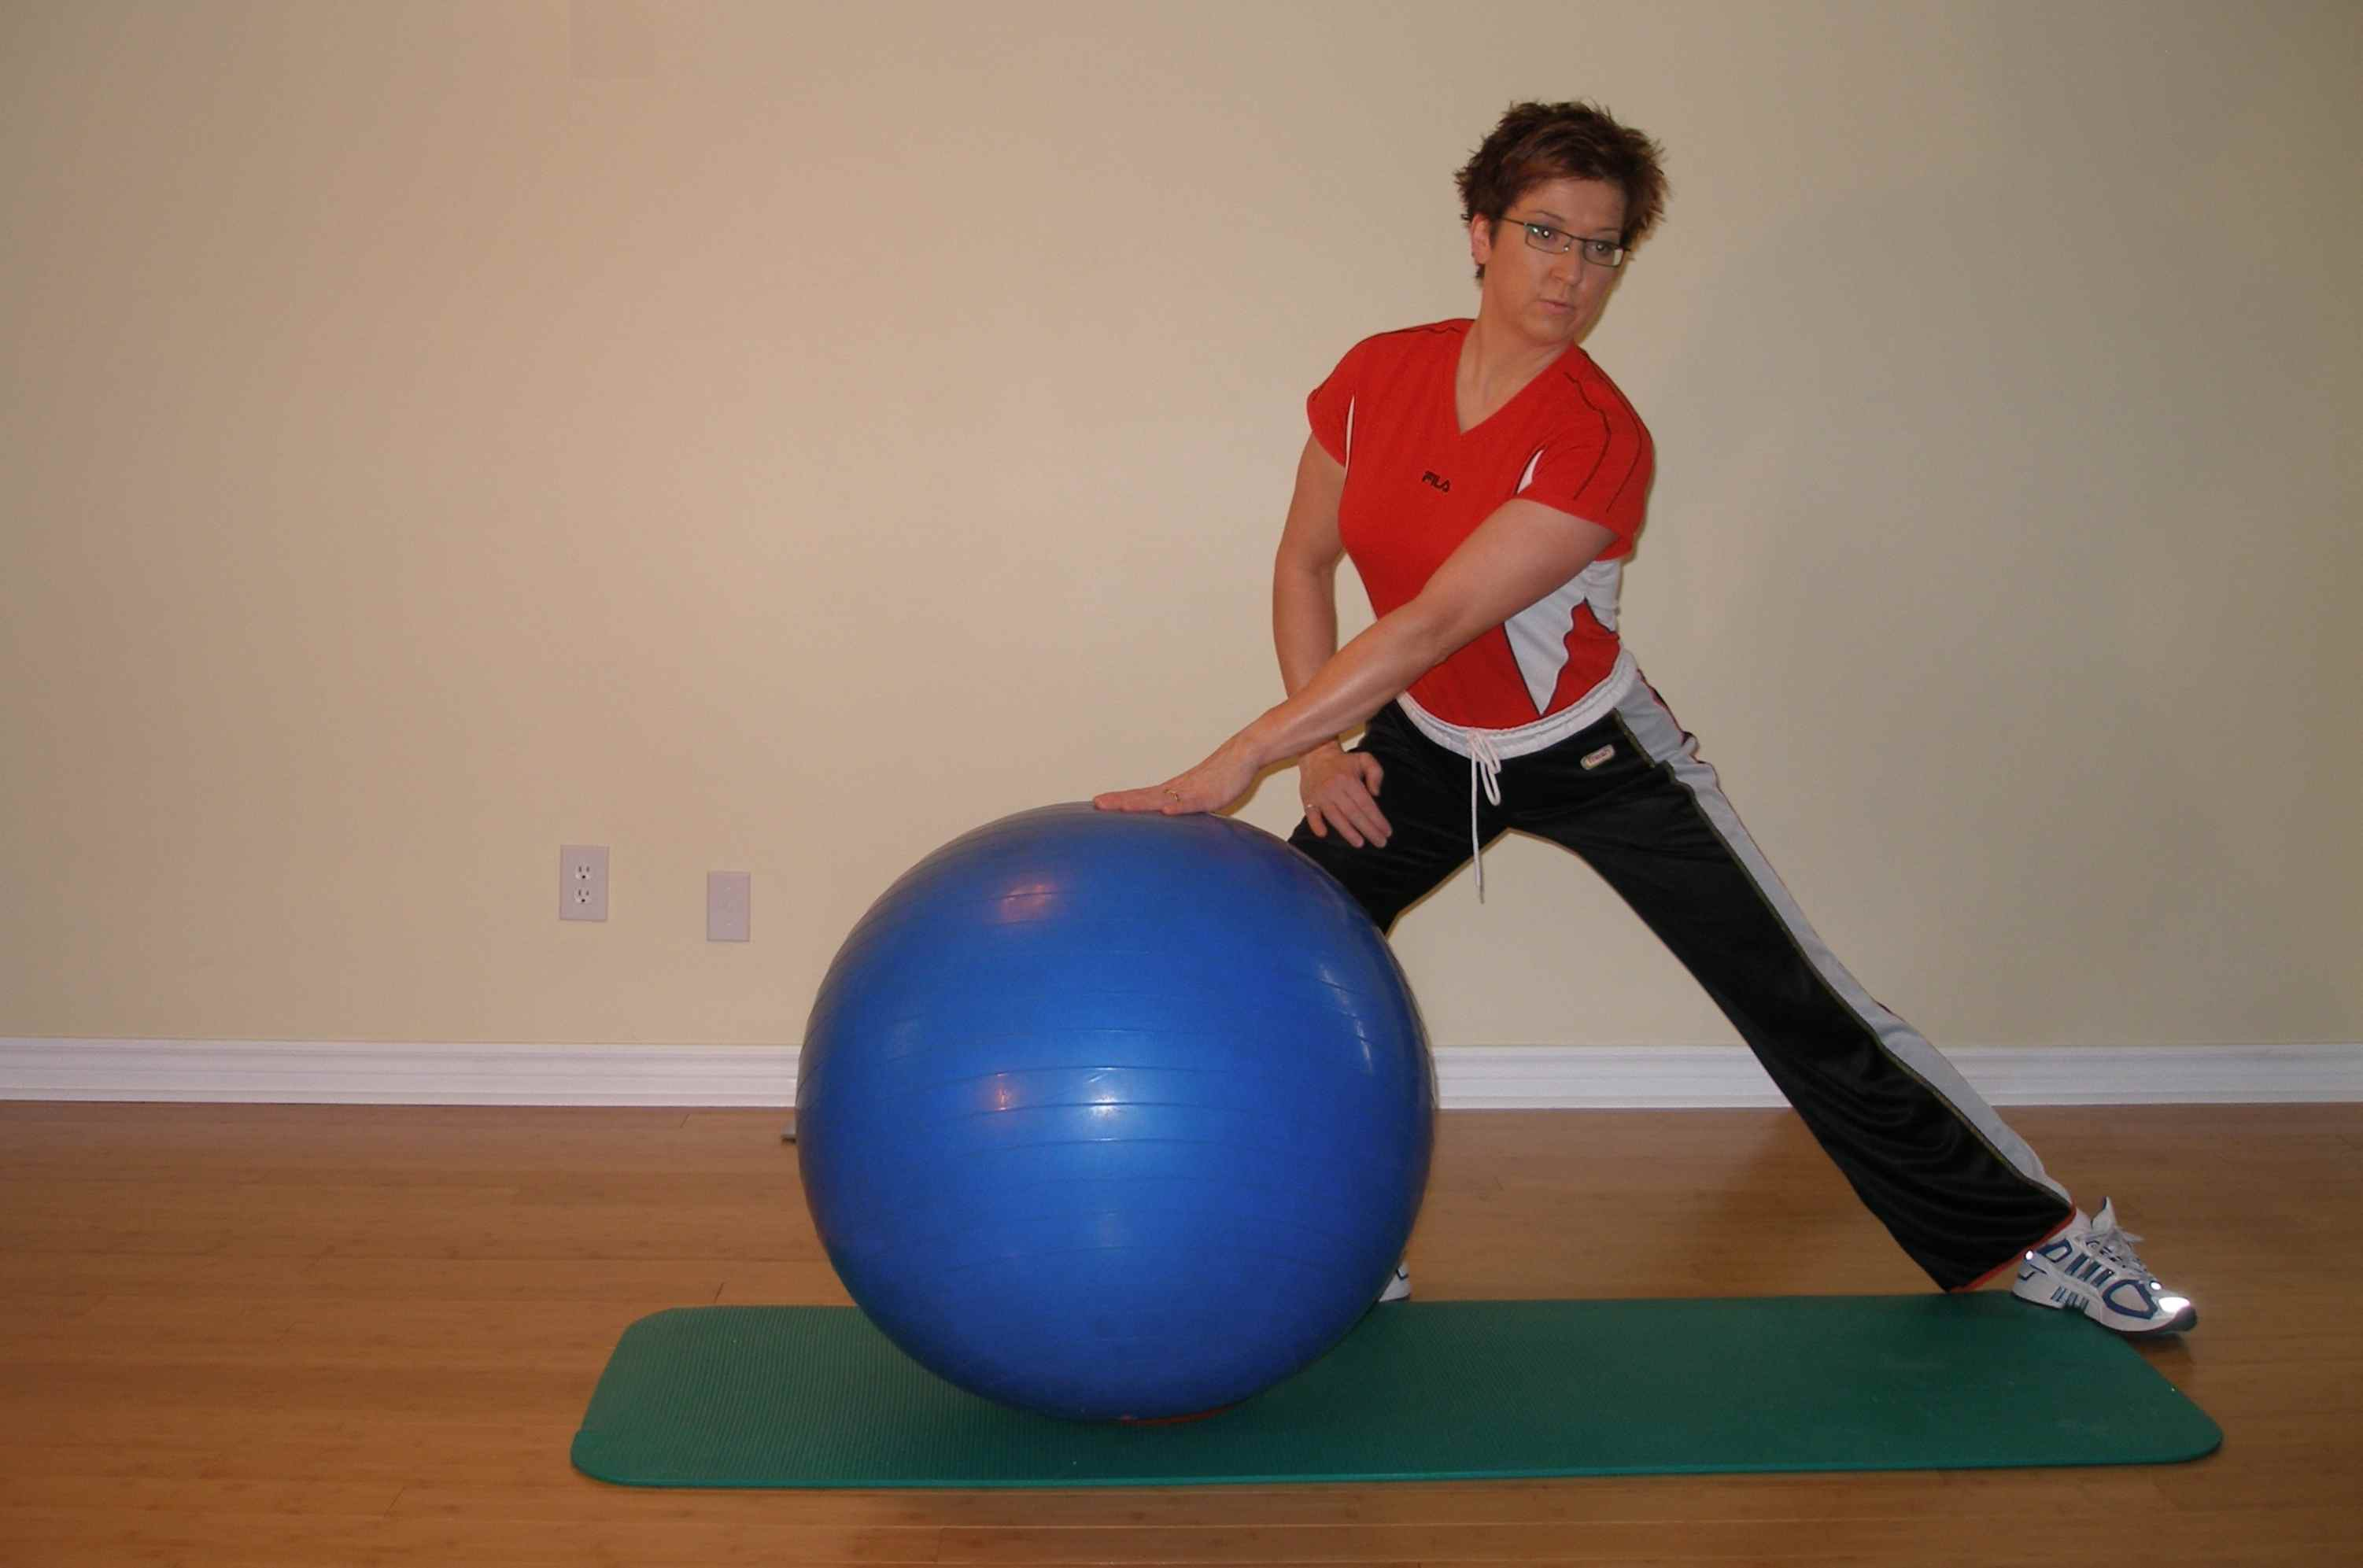 Exercise ball stretching adductors